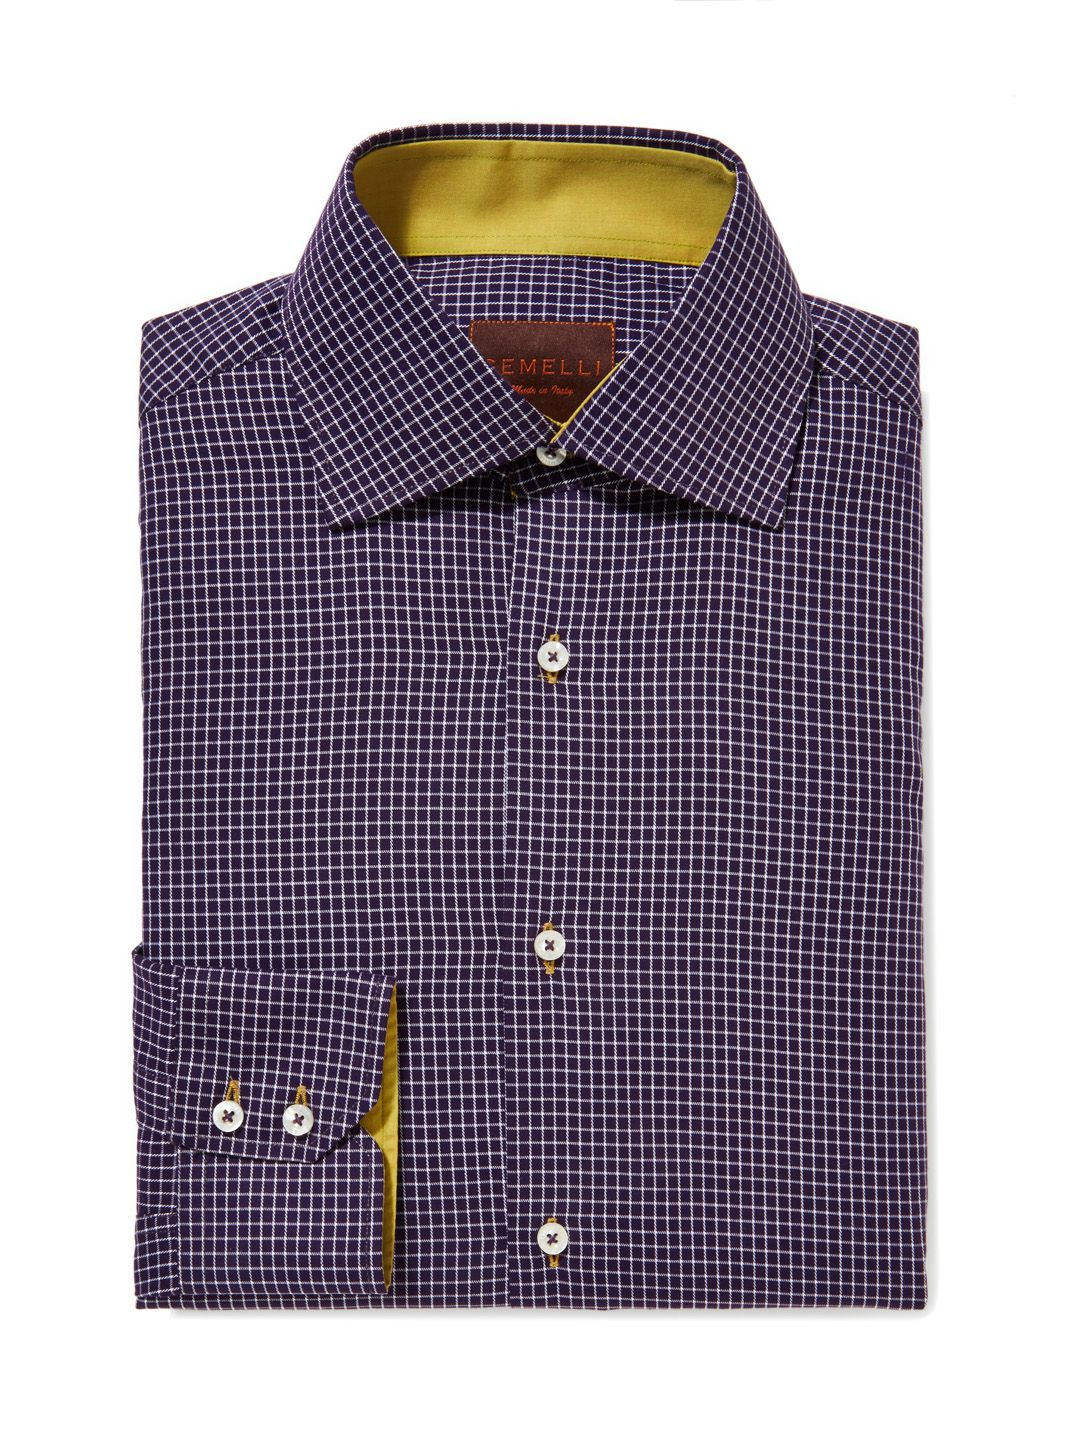 Checked Cotton Dress Shirt by GEMELLI at Gilt www.GemelliShop.com